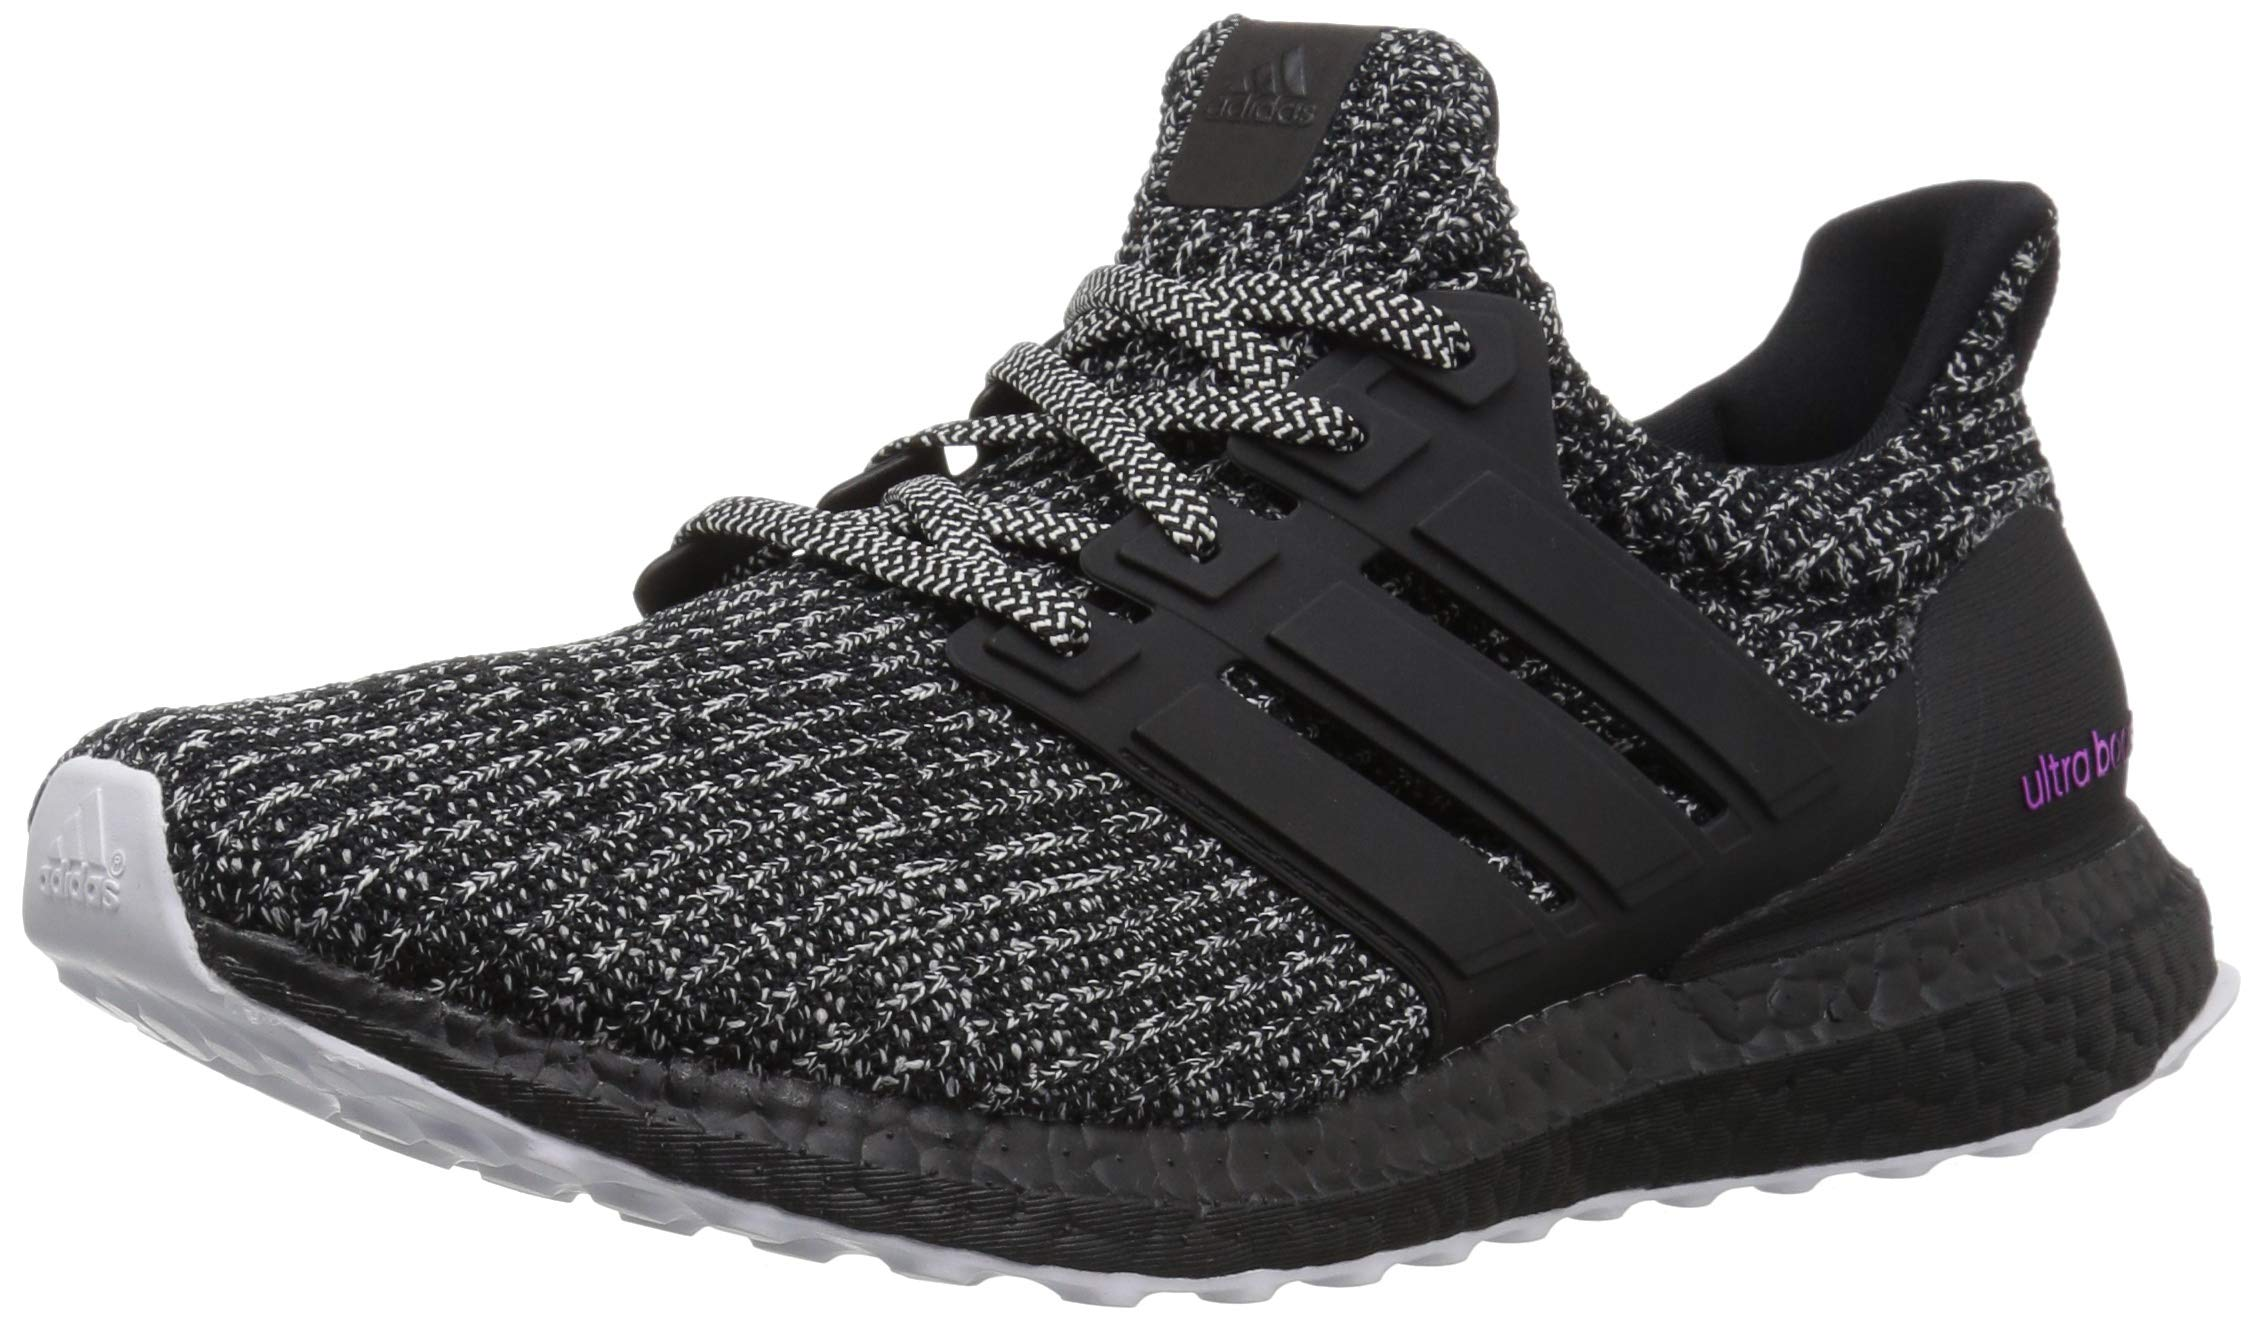 adidas Men's Ultraboost Running Shoe Cloud WhiteBlackShock Pink 10.5 M US